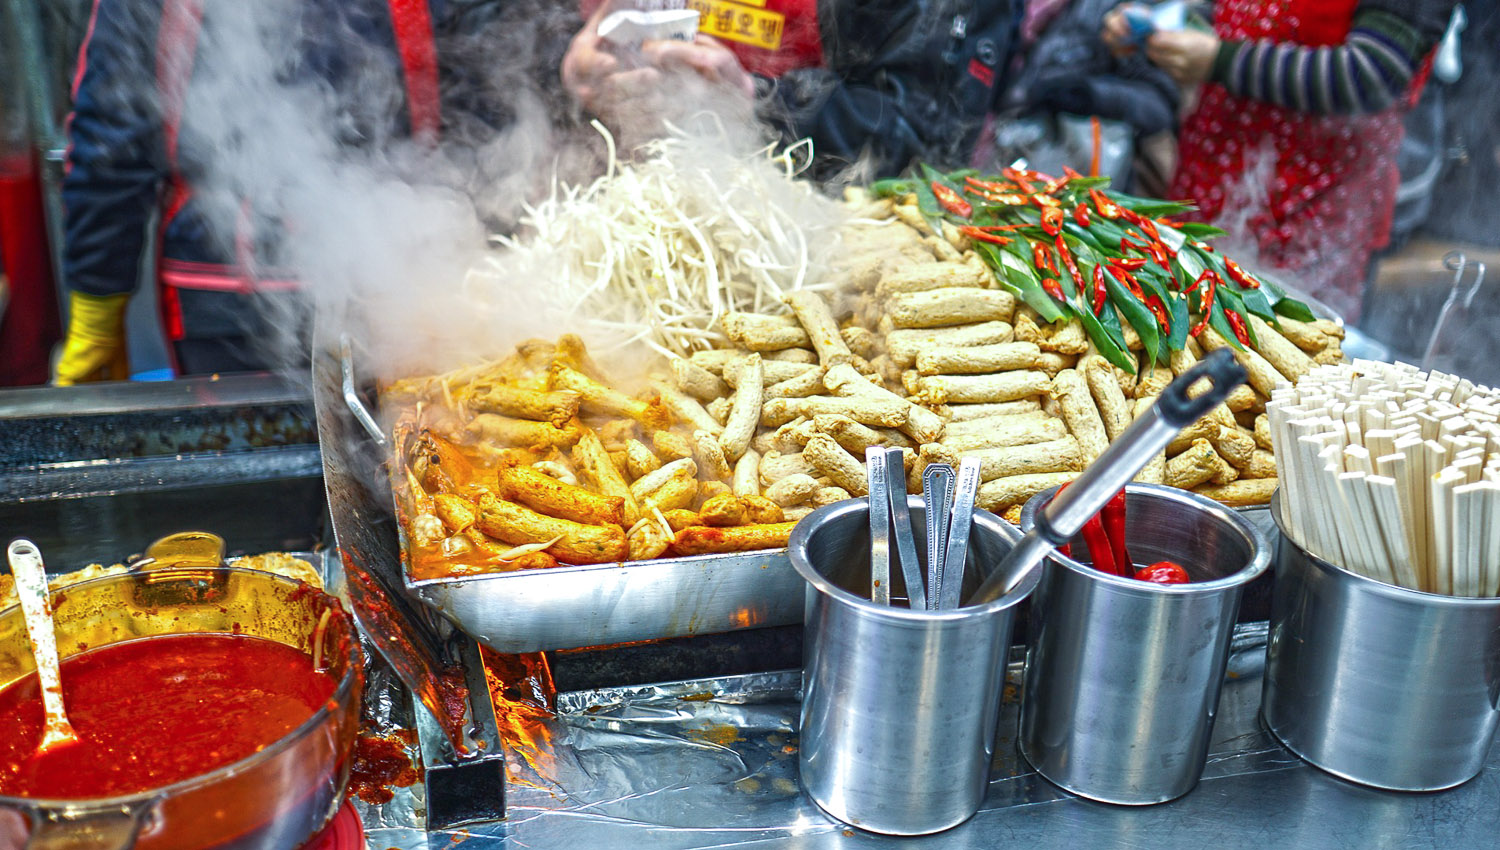 Food from street stalls is not always bad. Image:     Sanghyuk Cho